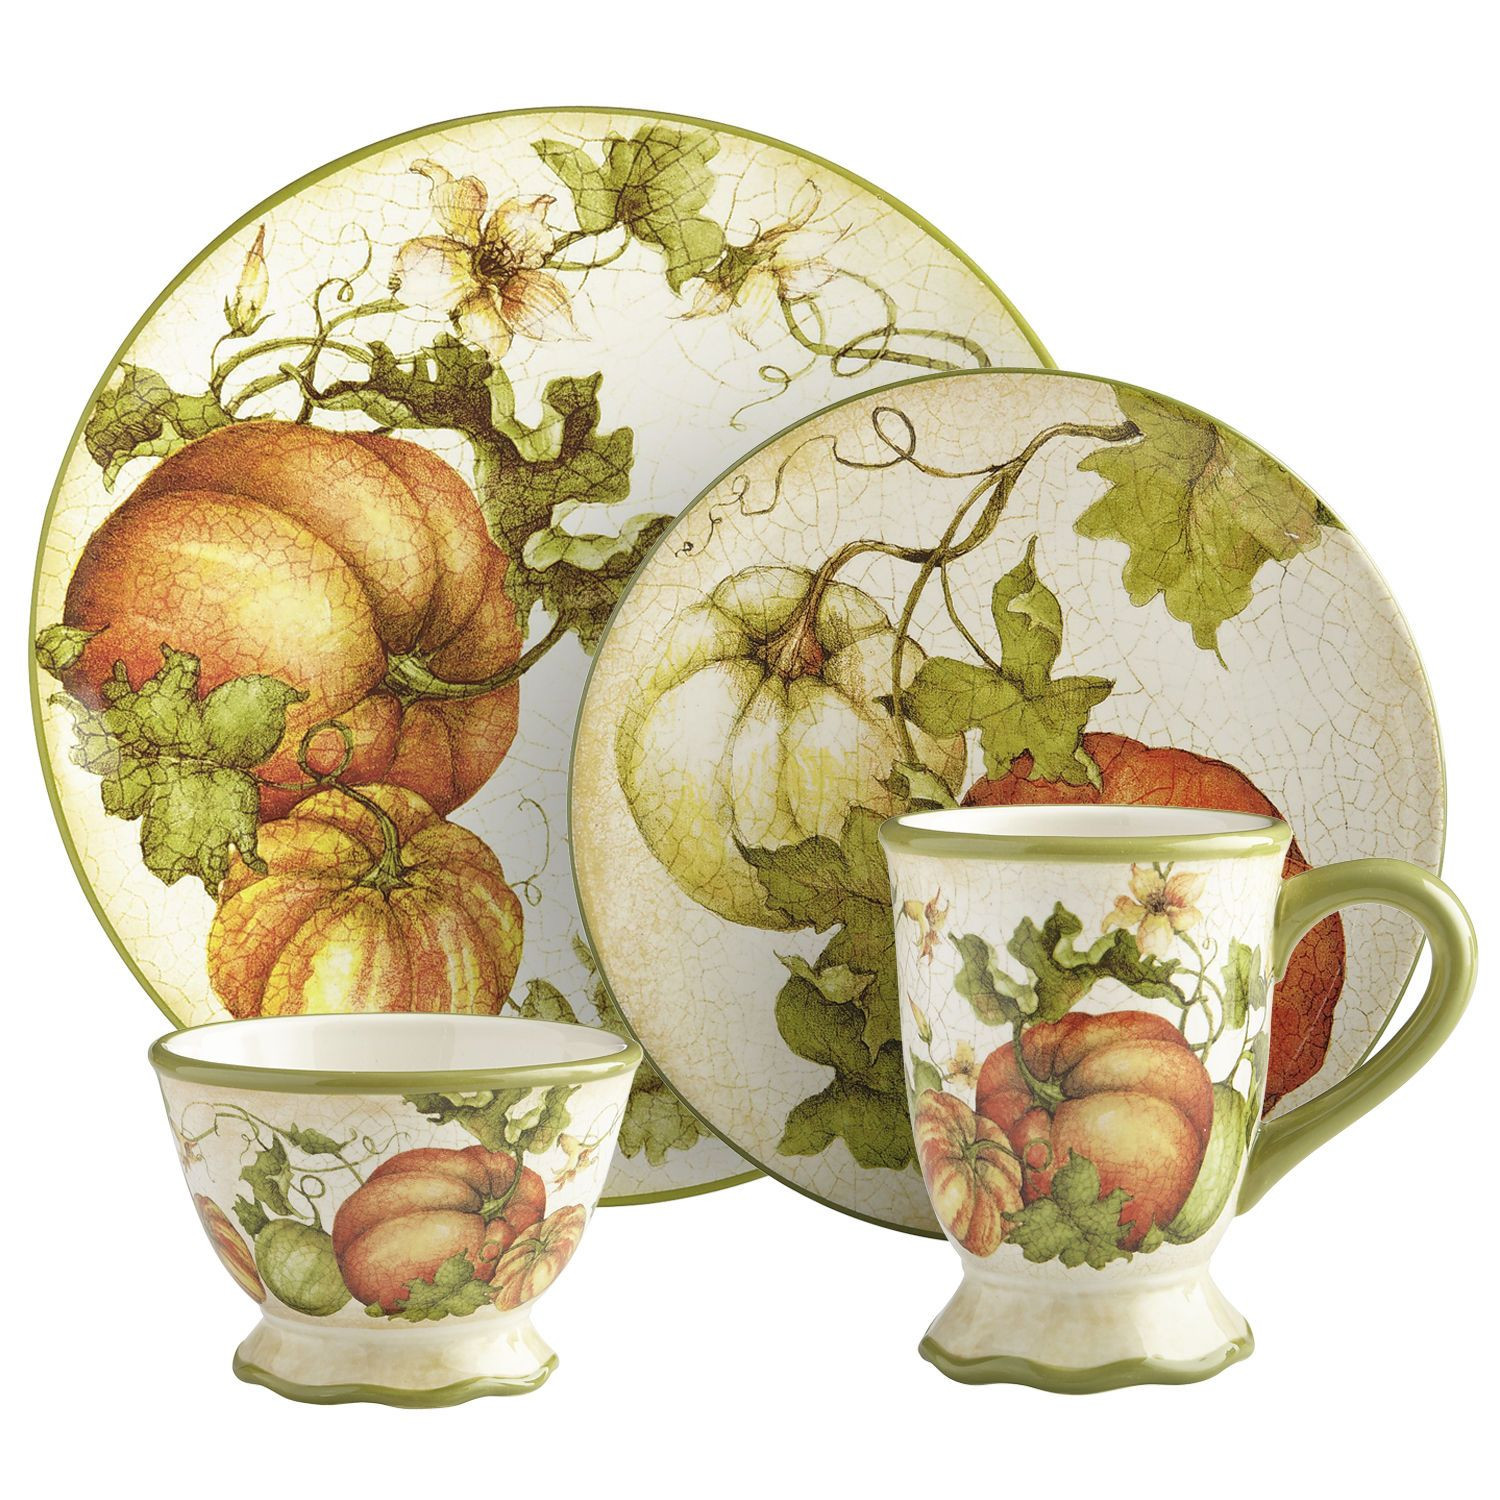 pier one terracotta vase of pier 1 harvest garden dinnerware ordered for my fall dishes jim throughout pier 1 harvest garden dinnerware ordered for my fall dishes jim says i have too many i say what is too many